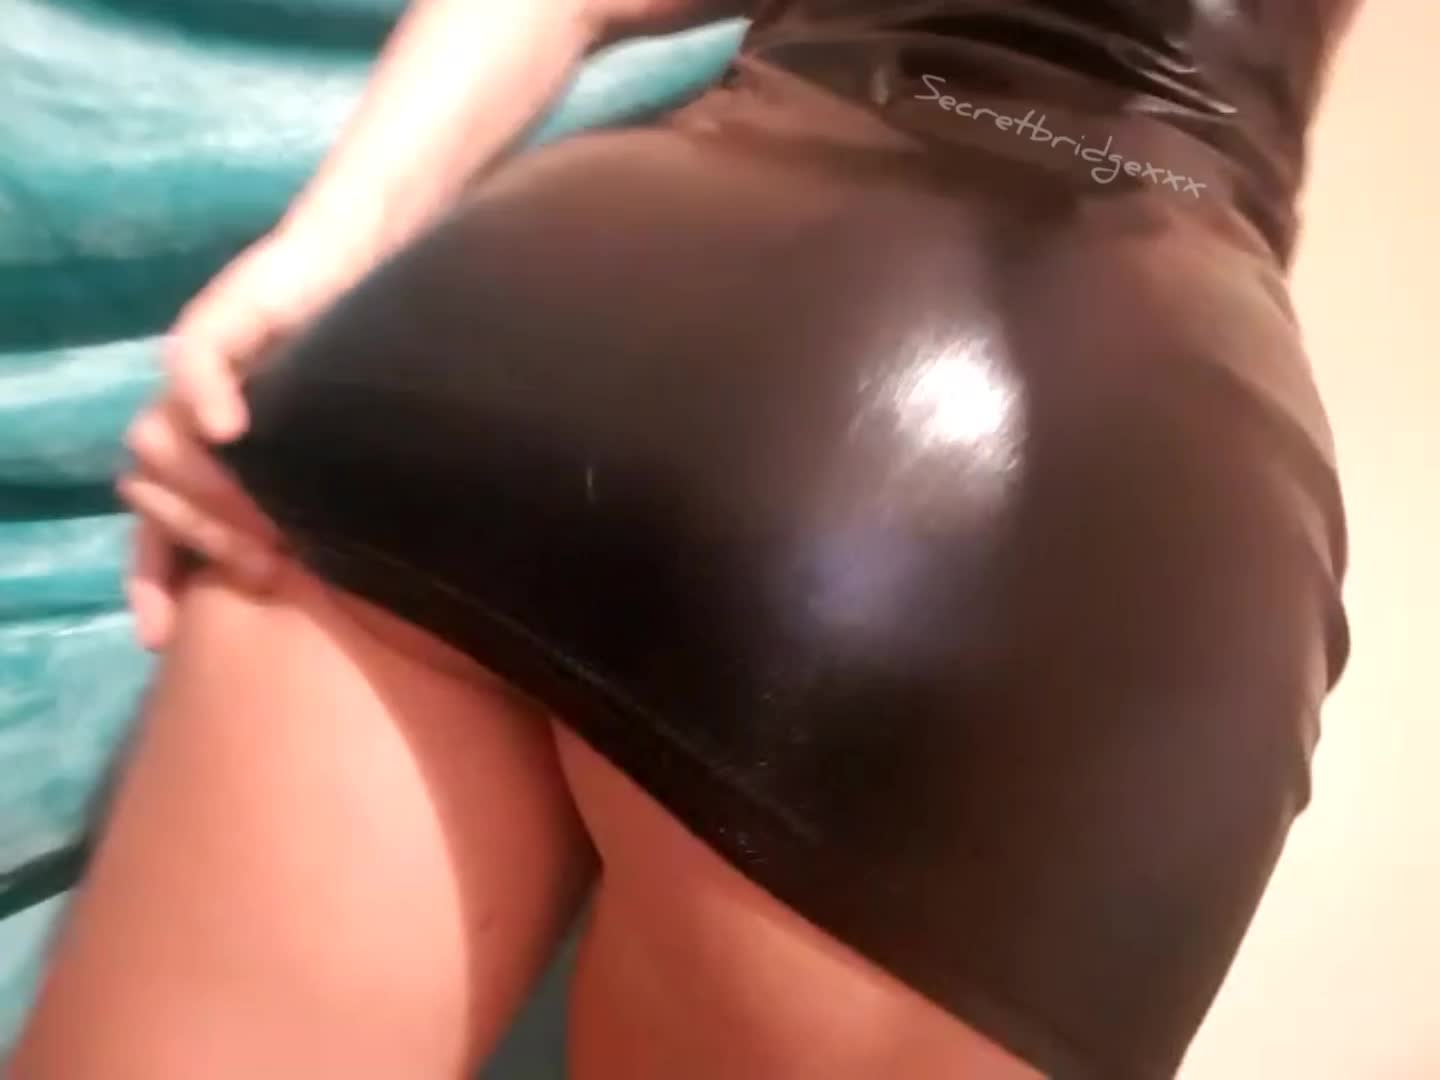 How's the view up my shiny dress?